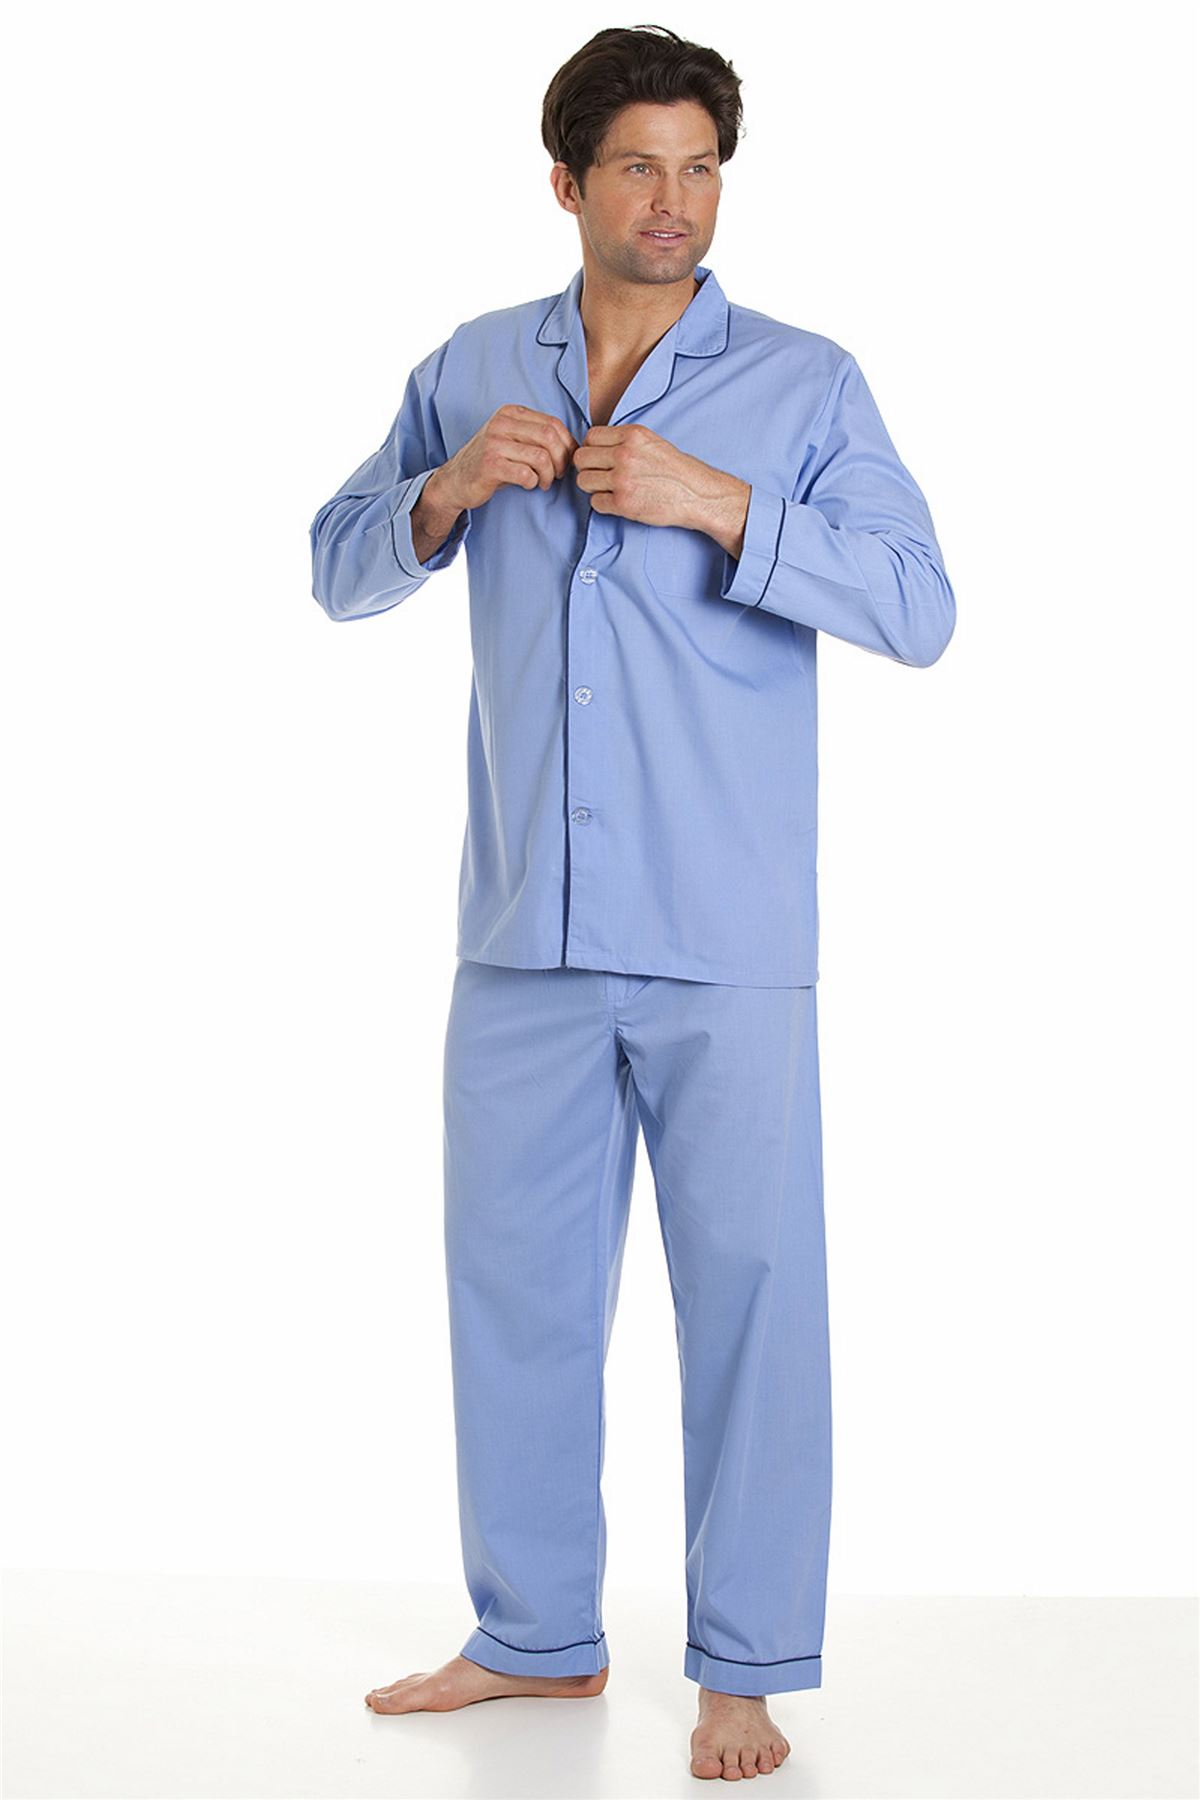 Men's Pajamas & Robes Belk carries a wide variety of men's pajamas, robes and sleepwear for all your loungewear needs. Shop for flannel pajama pants, lounge shorts, plush robes and more to find a cozy style you'll want to wear all the time.